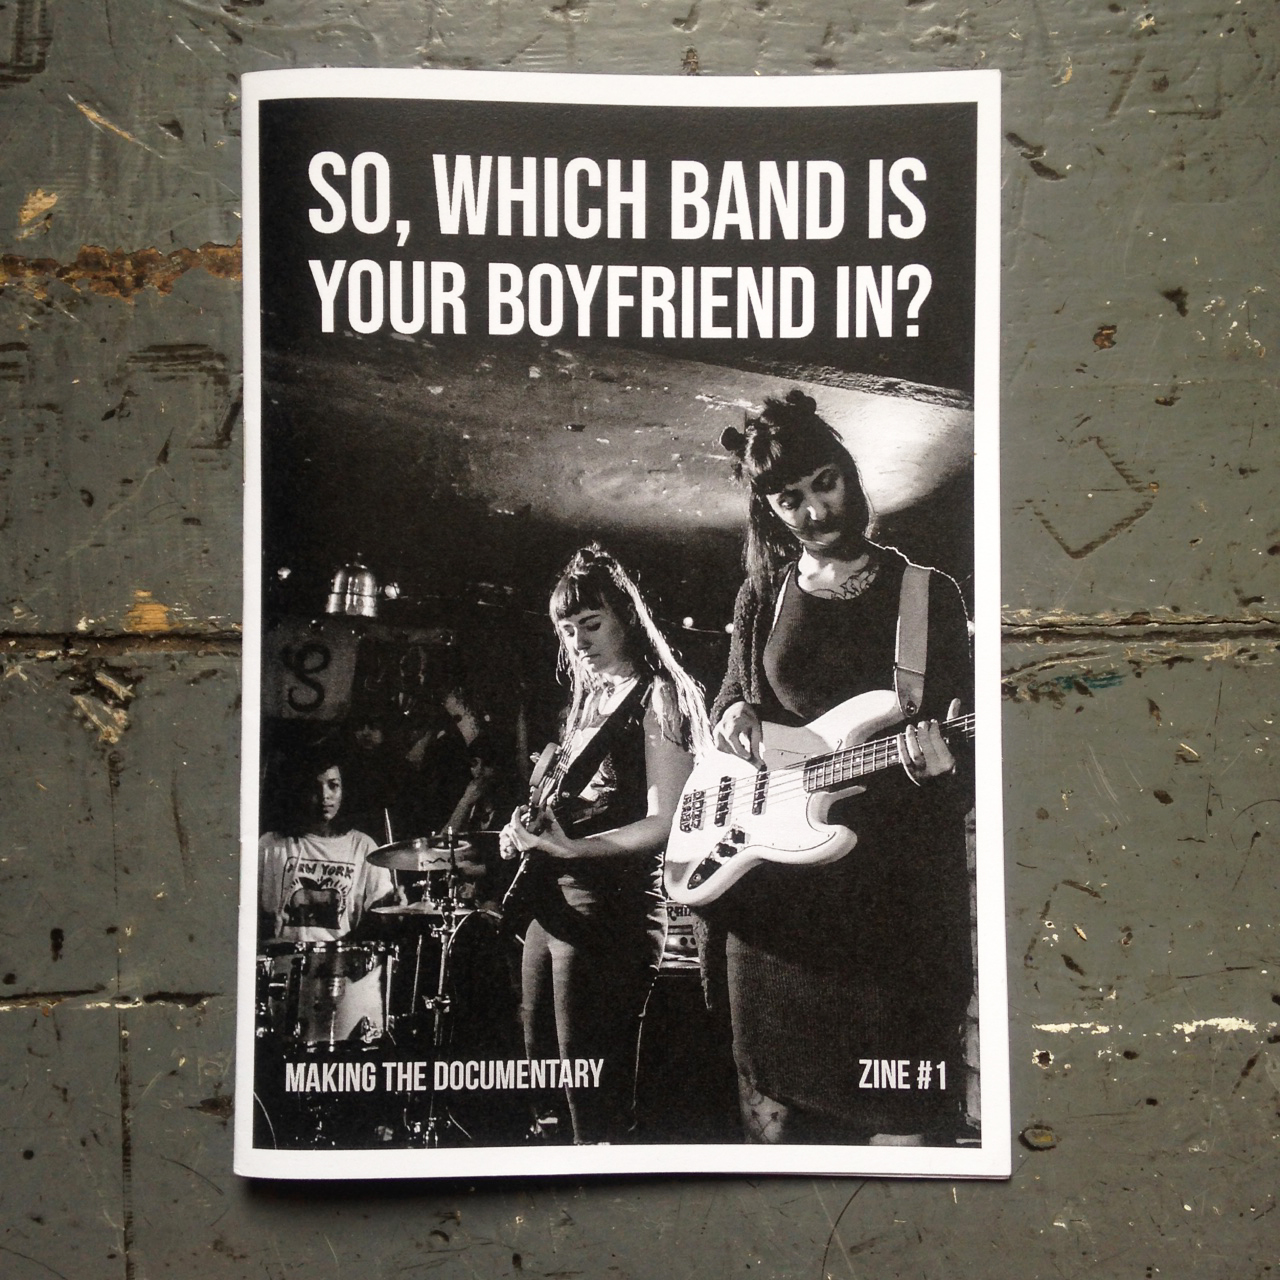 So, Which Band Is Your Boyfriend In? - issues 1-3